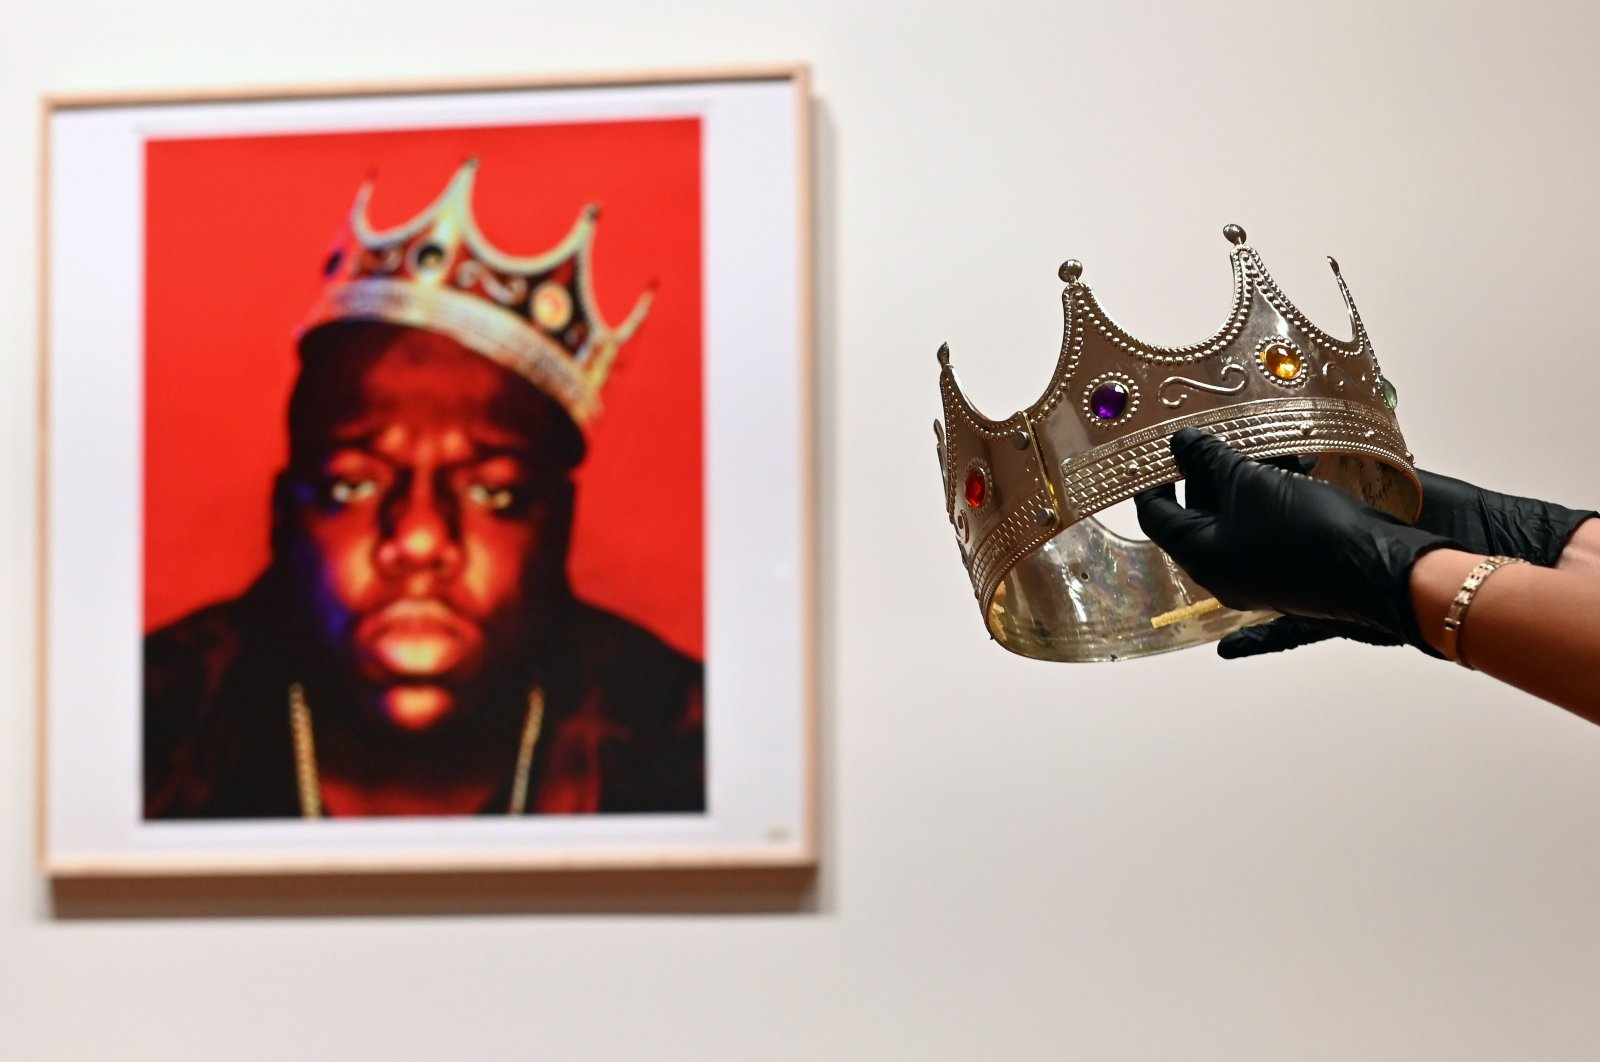 The crown worn by Notorious B.I.G. when photographed as the King of New York, is displayed during a press preview at Sotheby's for their inaugural HIP HOP Auction on Sept. 10, 2020 in New York City. (AFP PHOTO)